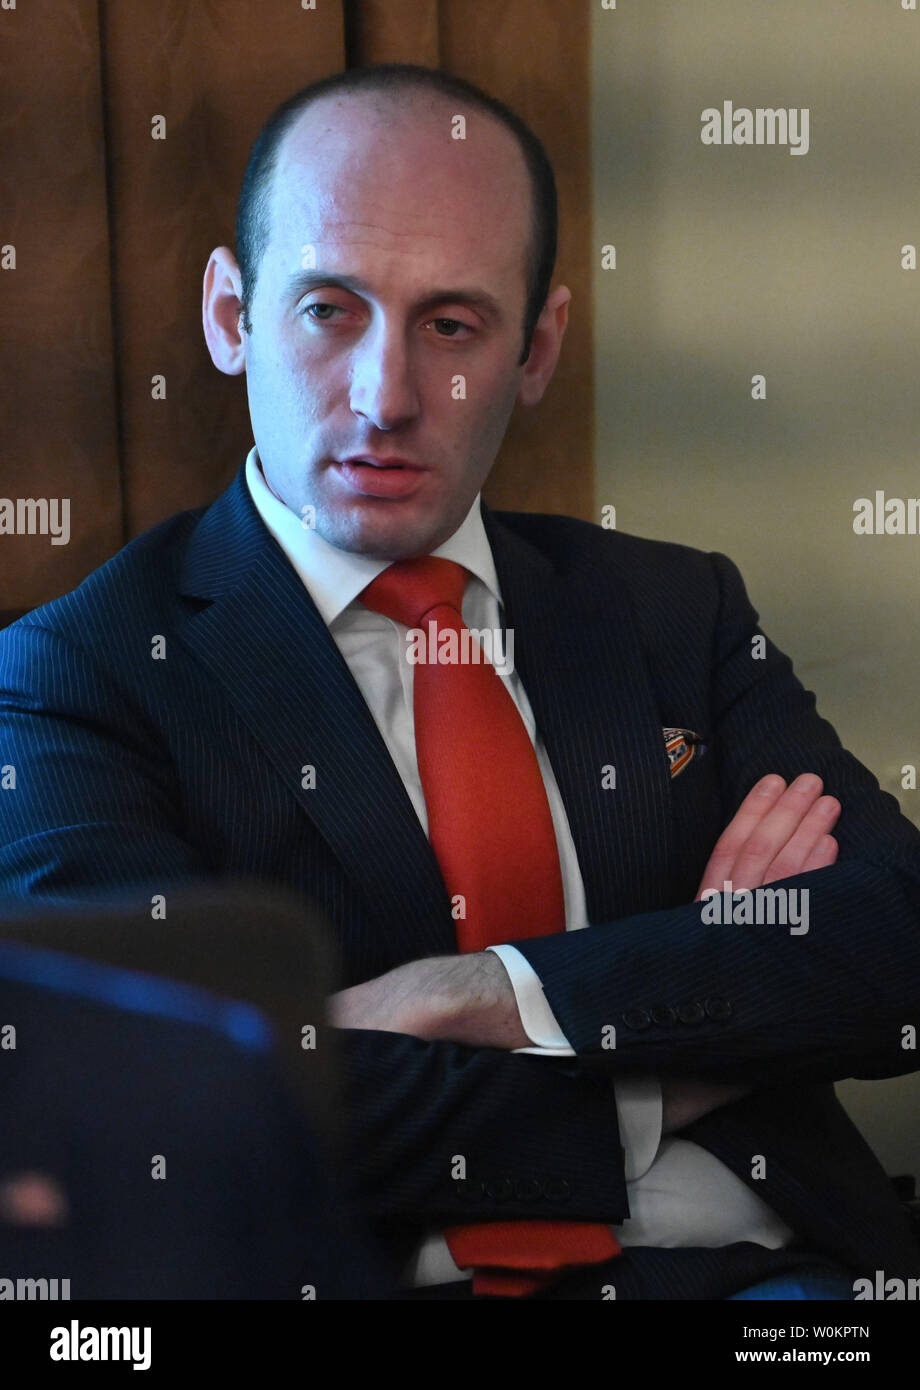 Stephen Miller High Resolution Stock Photography And Images Alamy